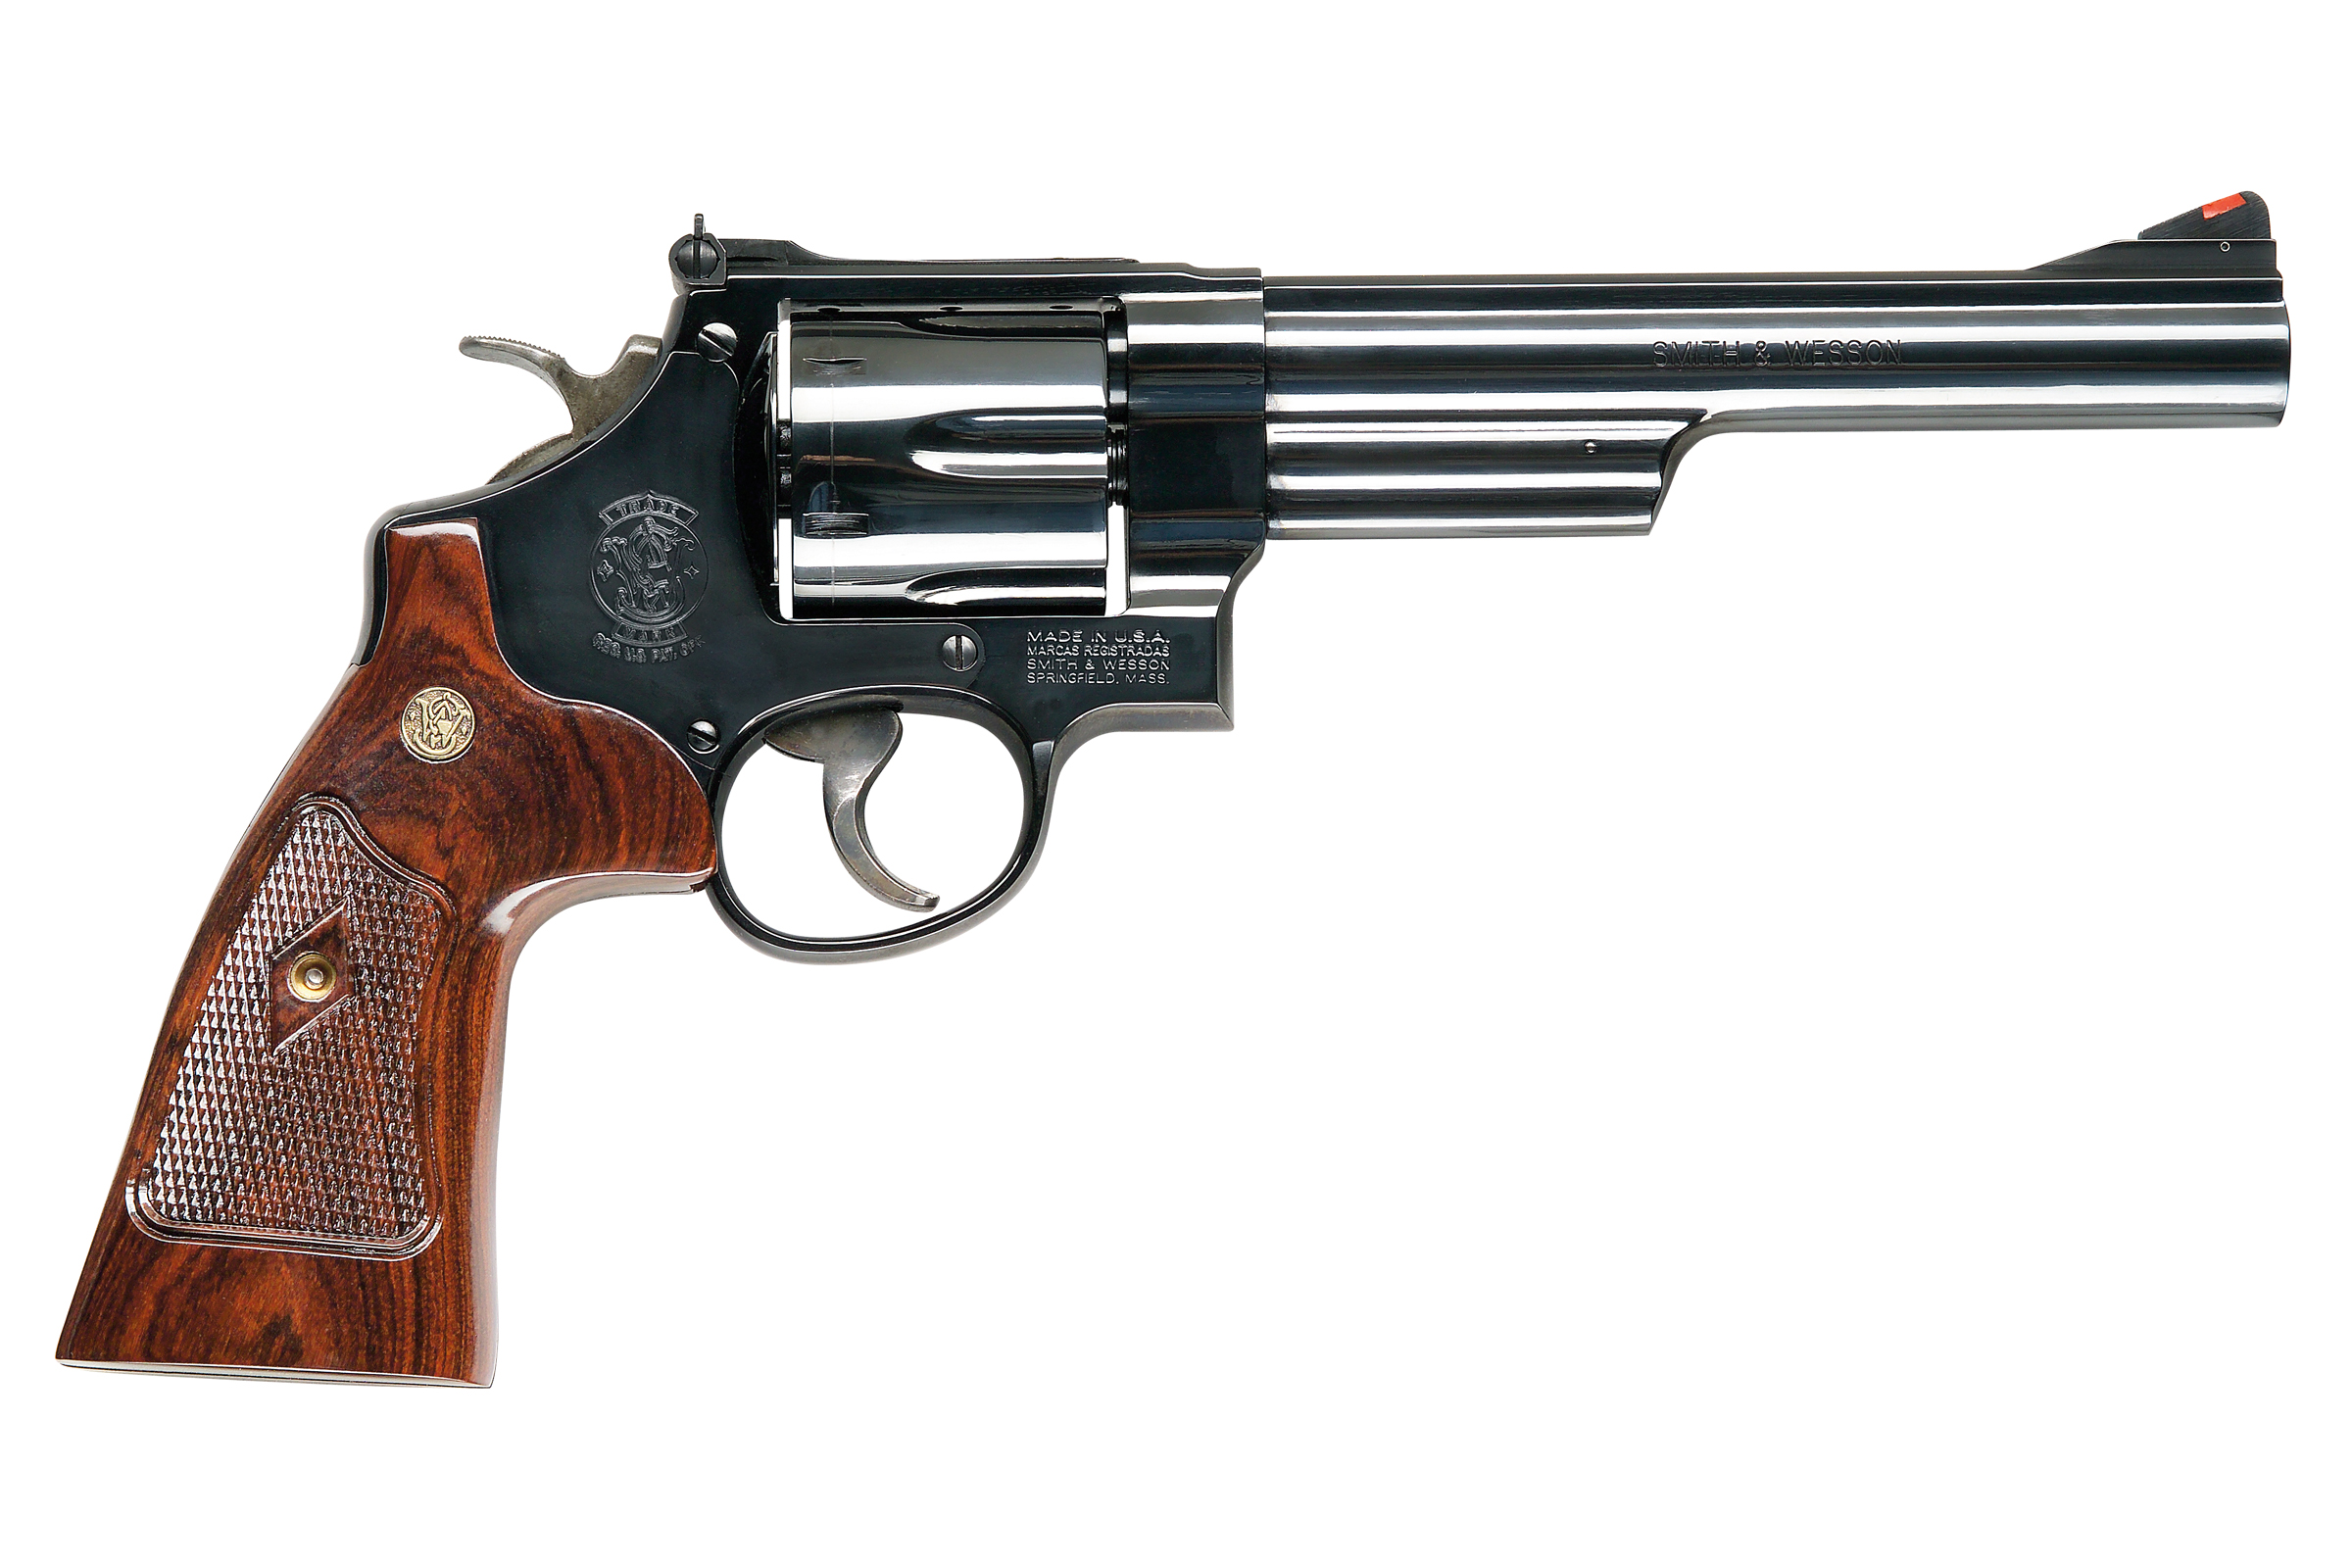 The most powerful revolver in the world